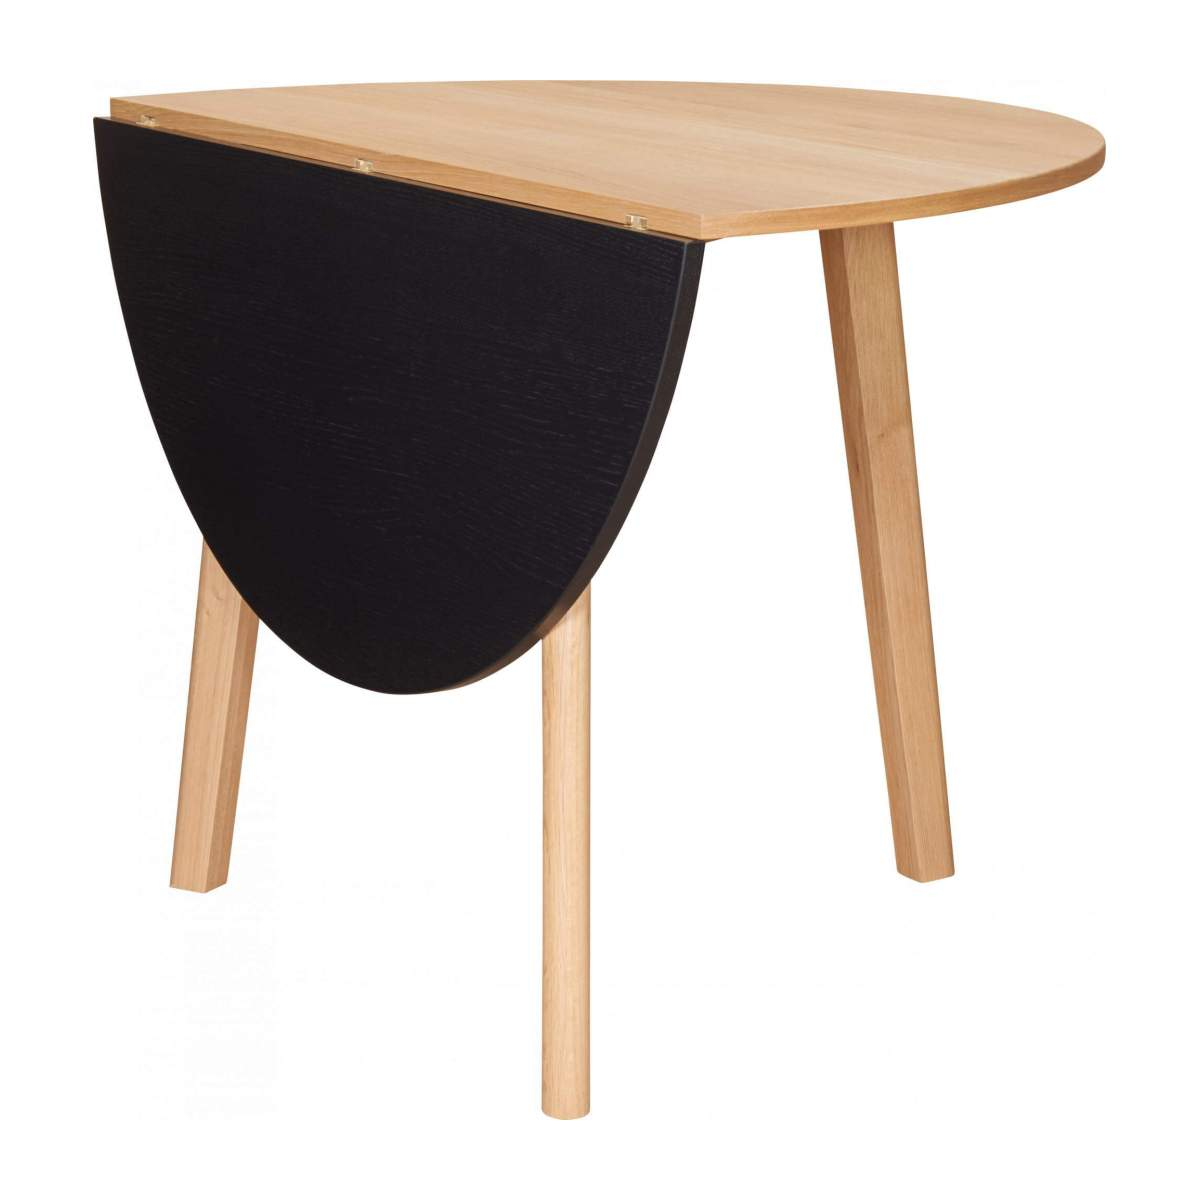 Black oak wood extending table - Design by Goncalo Campos n°2